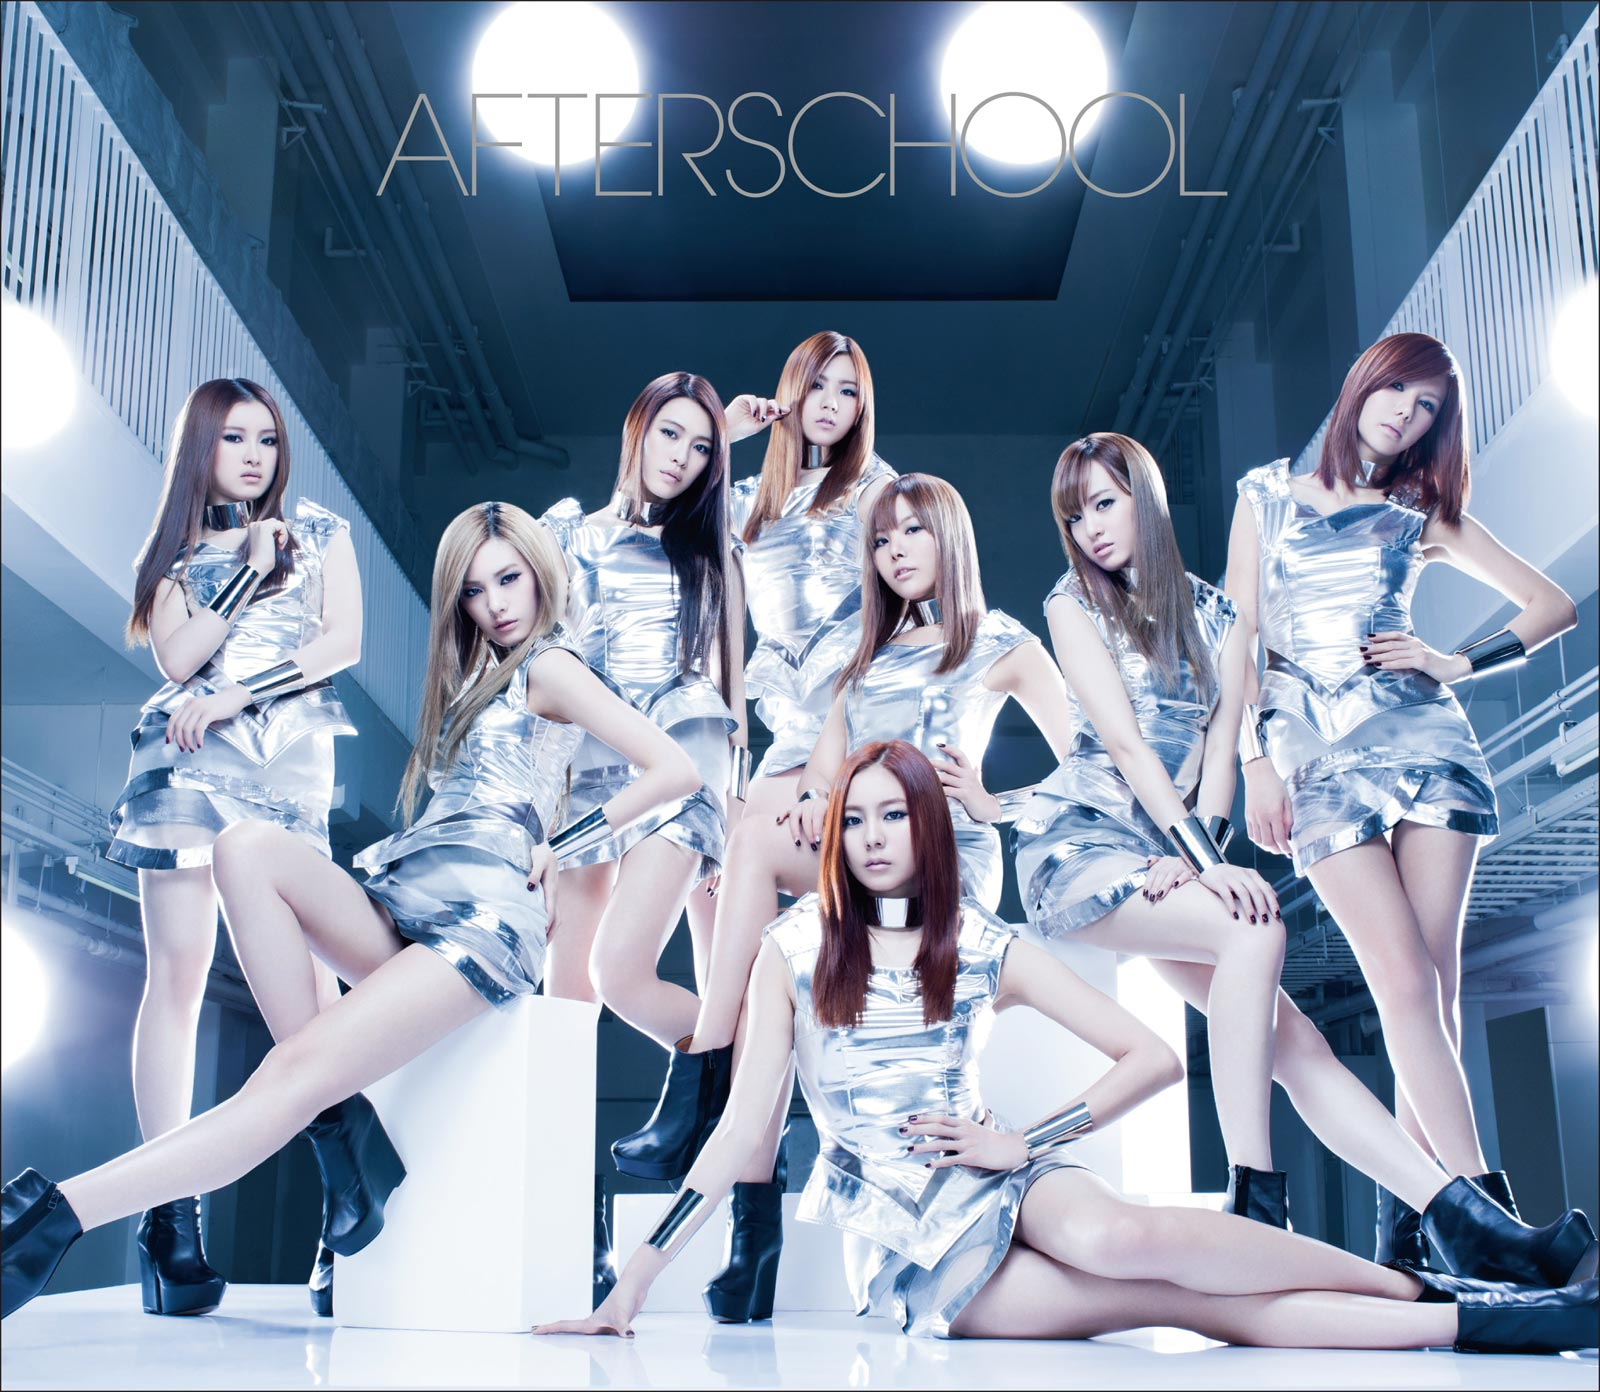 20160209.08 After School - Rambling girls ~ Because of you cover 2.jpg